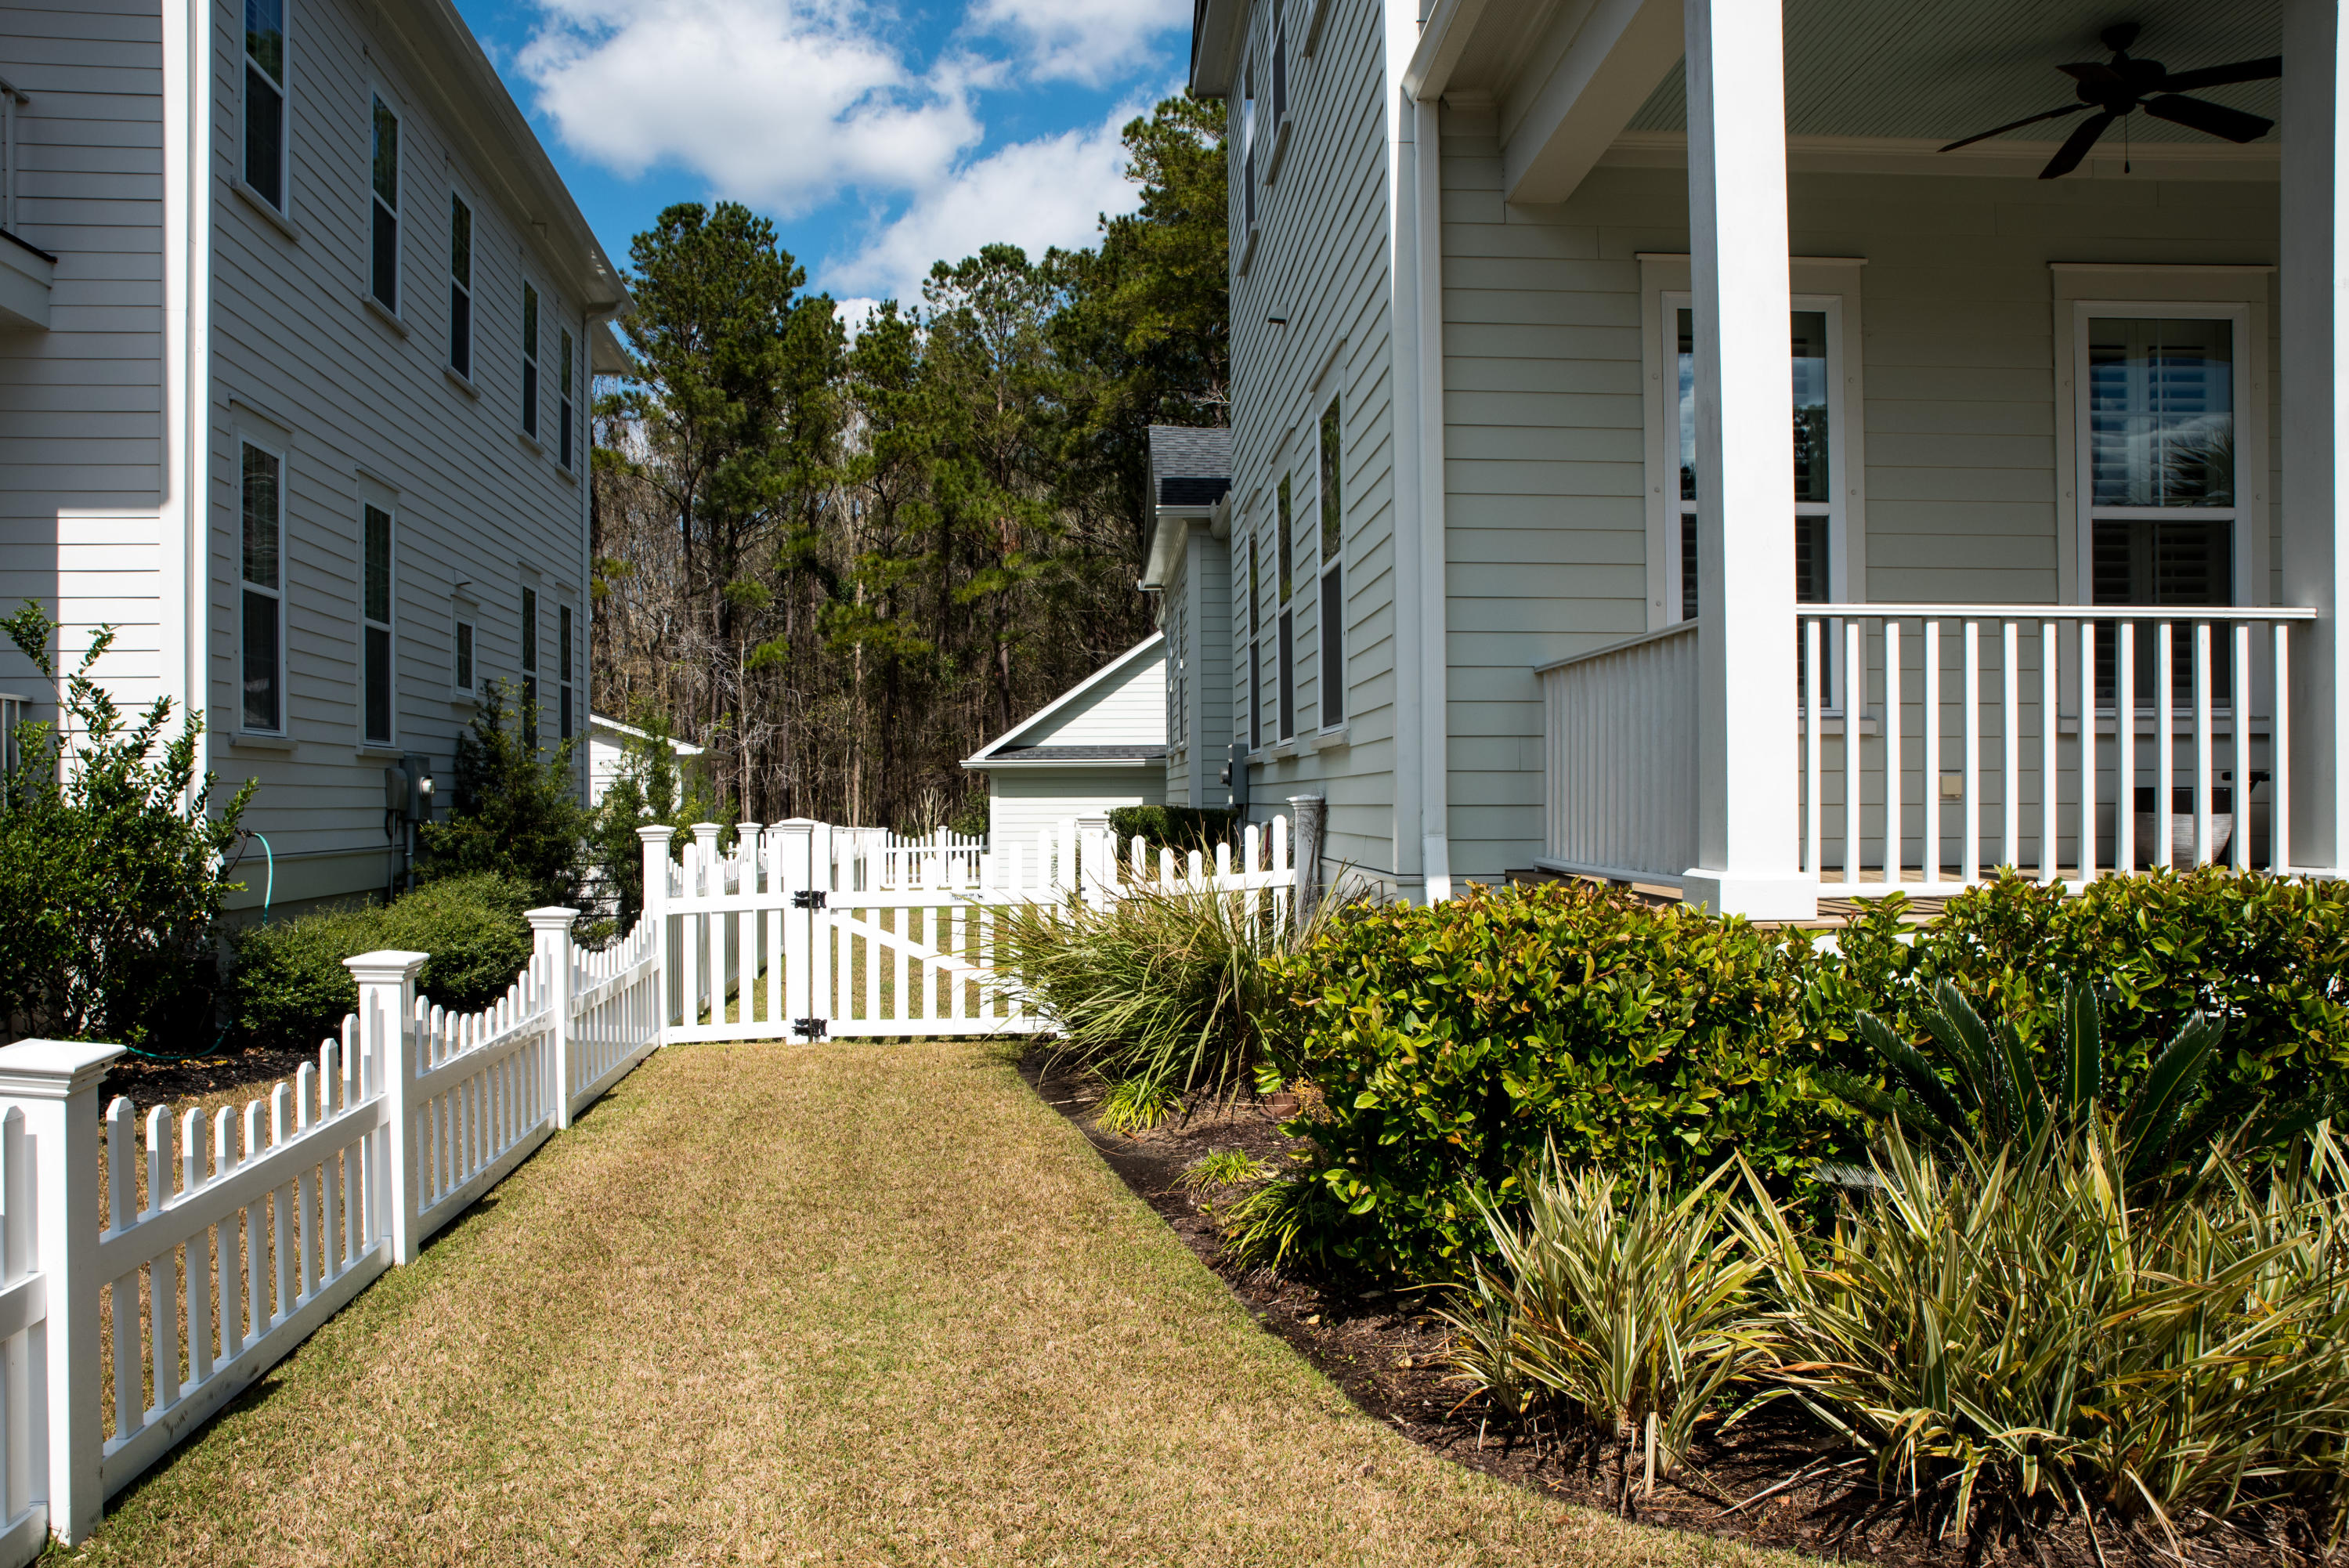 Rivertowne On The Wando Homes For Sale - 2861 Rivertowne, Mount Pleasant, SC - 15